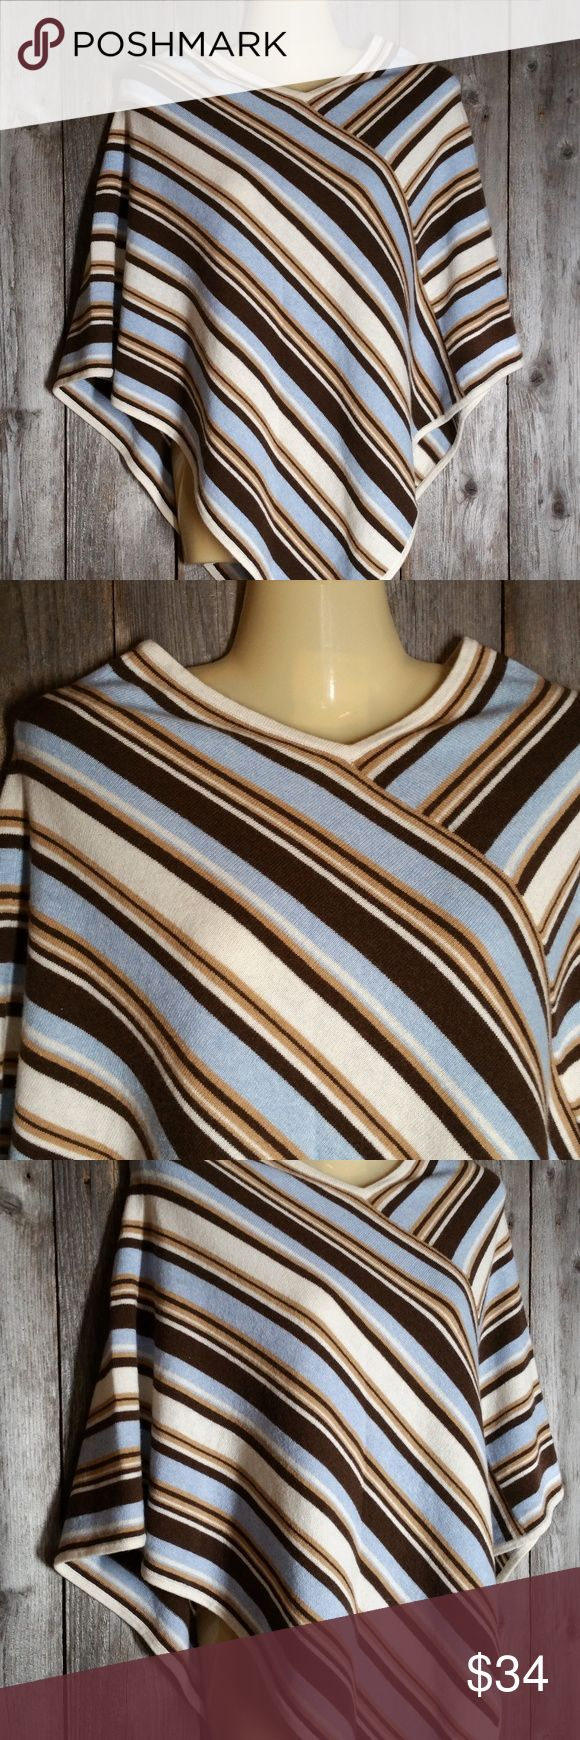 Isadora Story Poncho Sweater Cashmere Blend Isadora Story Poncho Sweater Womens Cashmere Wool Blend Multicolor Striped Gently used One size Merino wool, viscose, nylon & cashmere blend Dry Clean Approx length from top of shoulder 31 Isadora Story Sweaters Shrugs & Ponchos